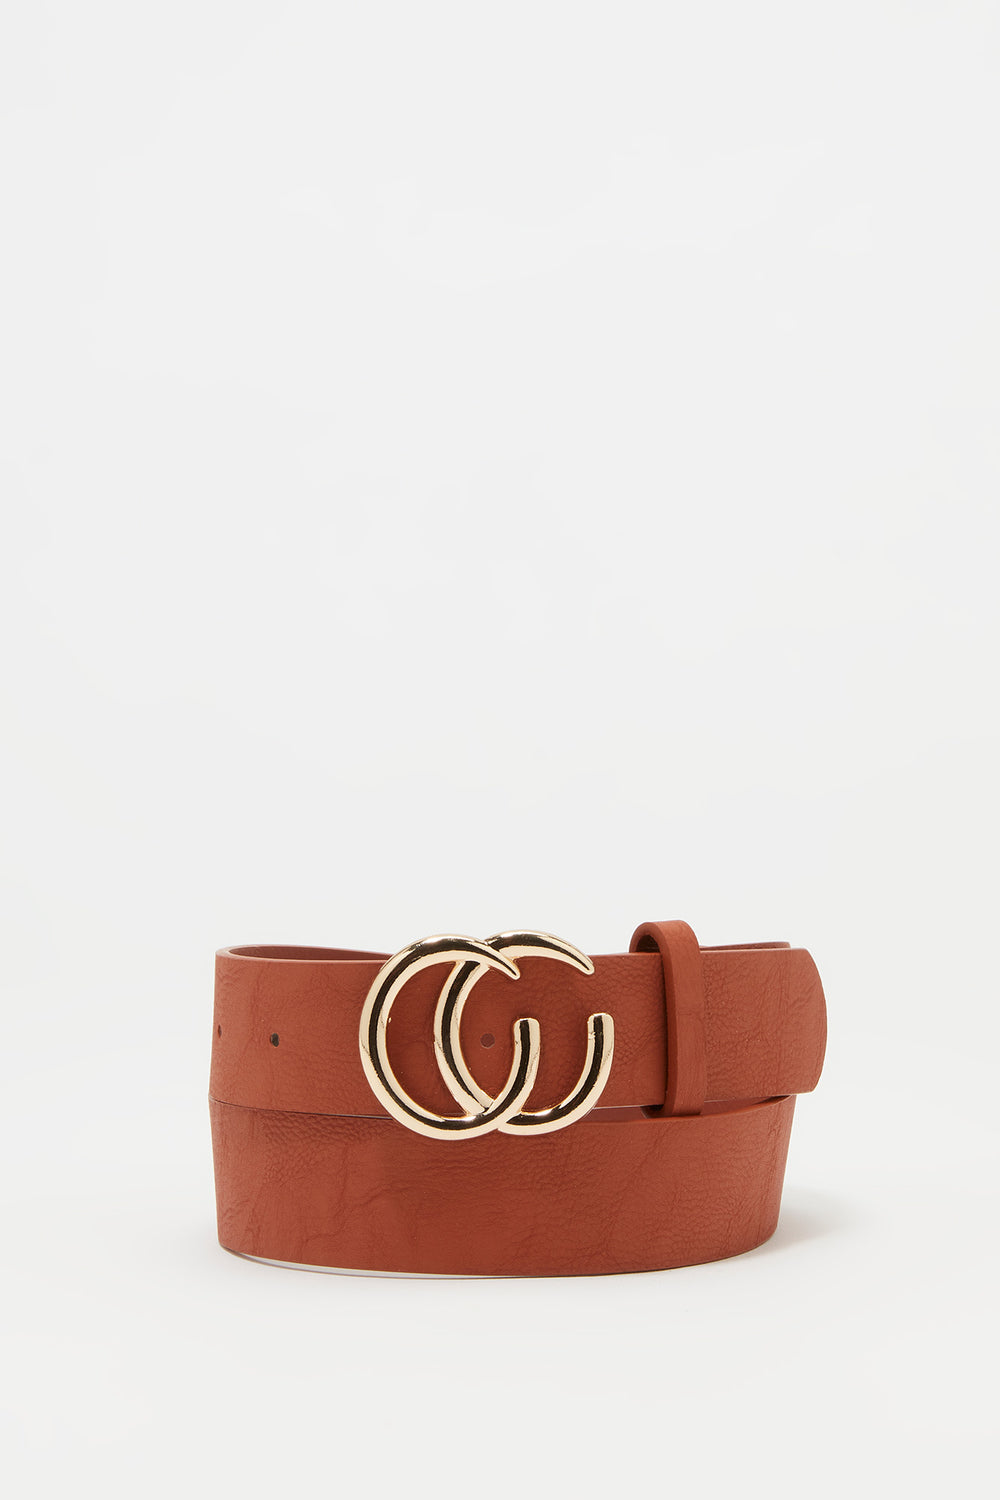 Link CC Buckle Belt Camel